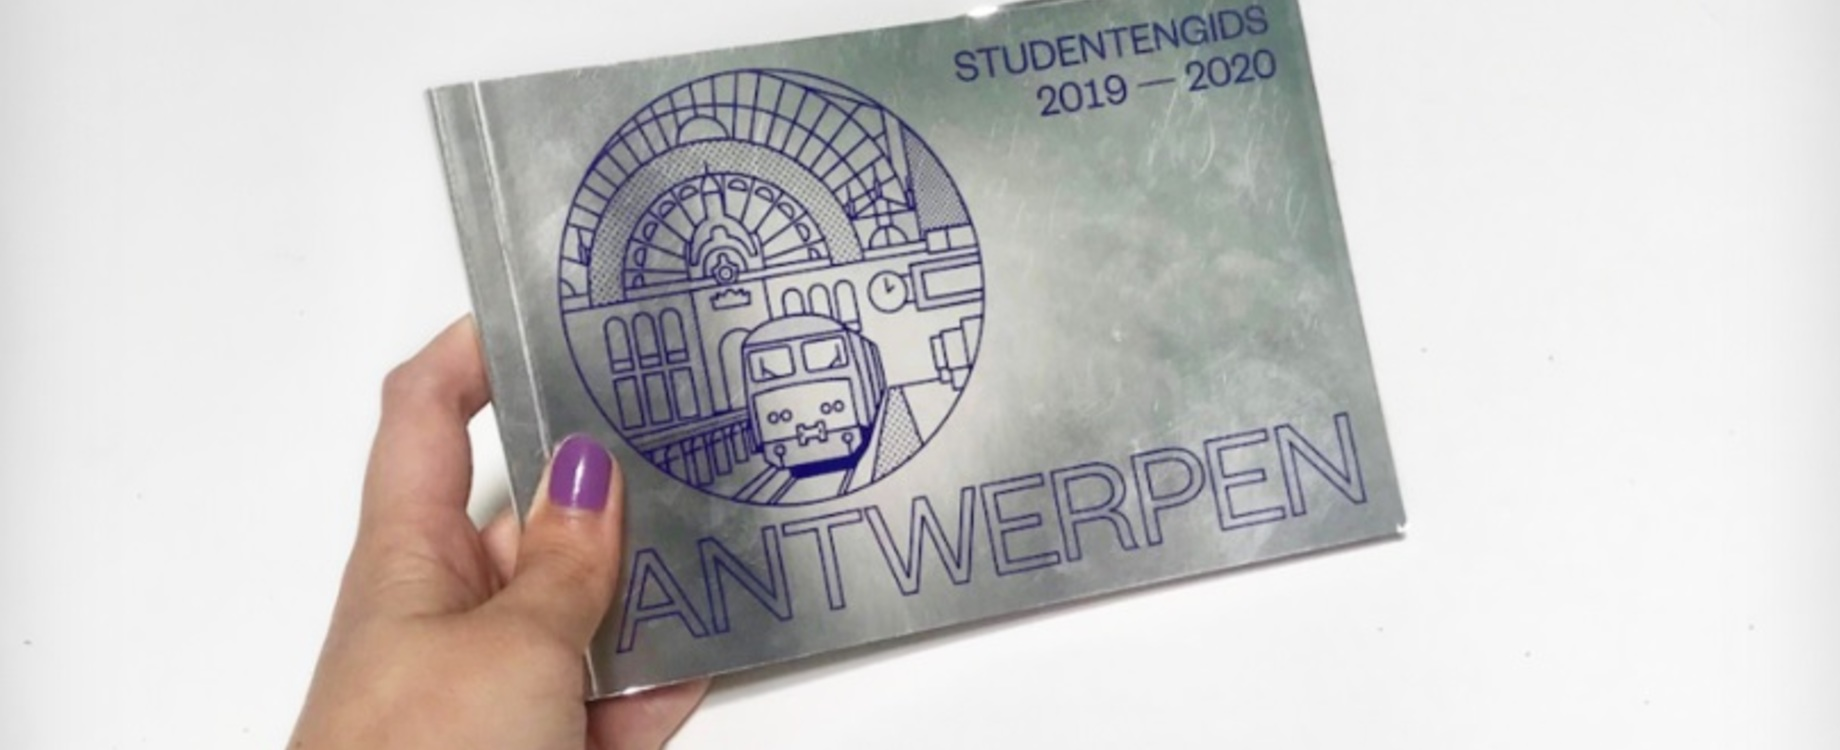 Student Guide Antwerp